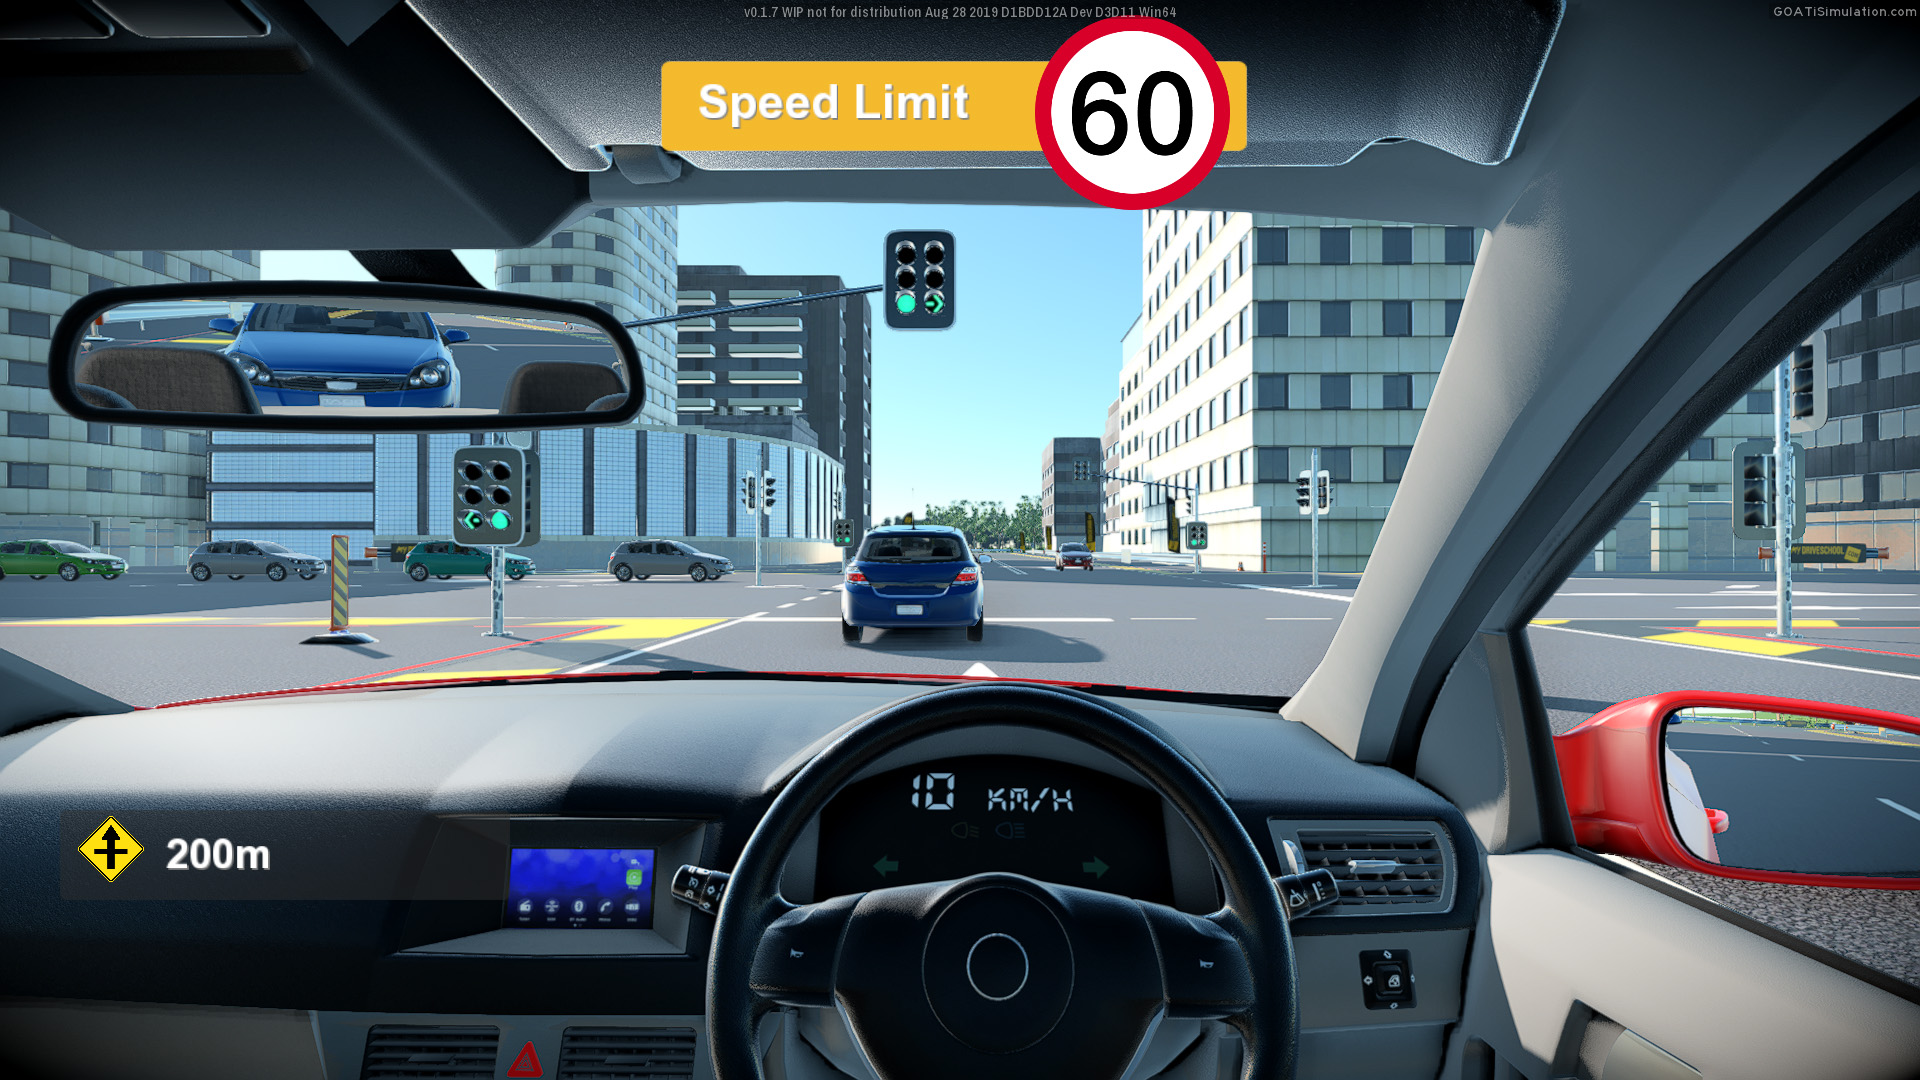 VR Driving Simulator - Signalled Intersection